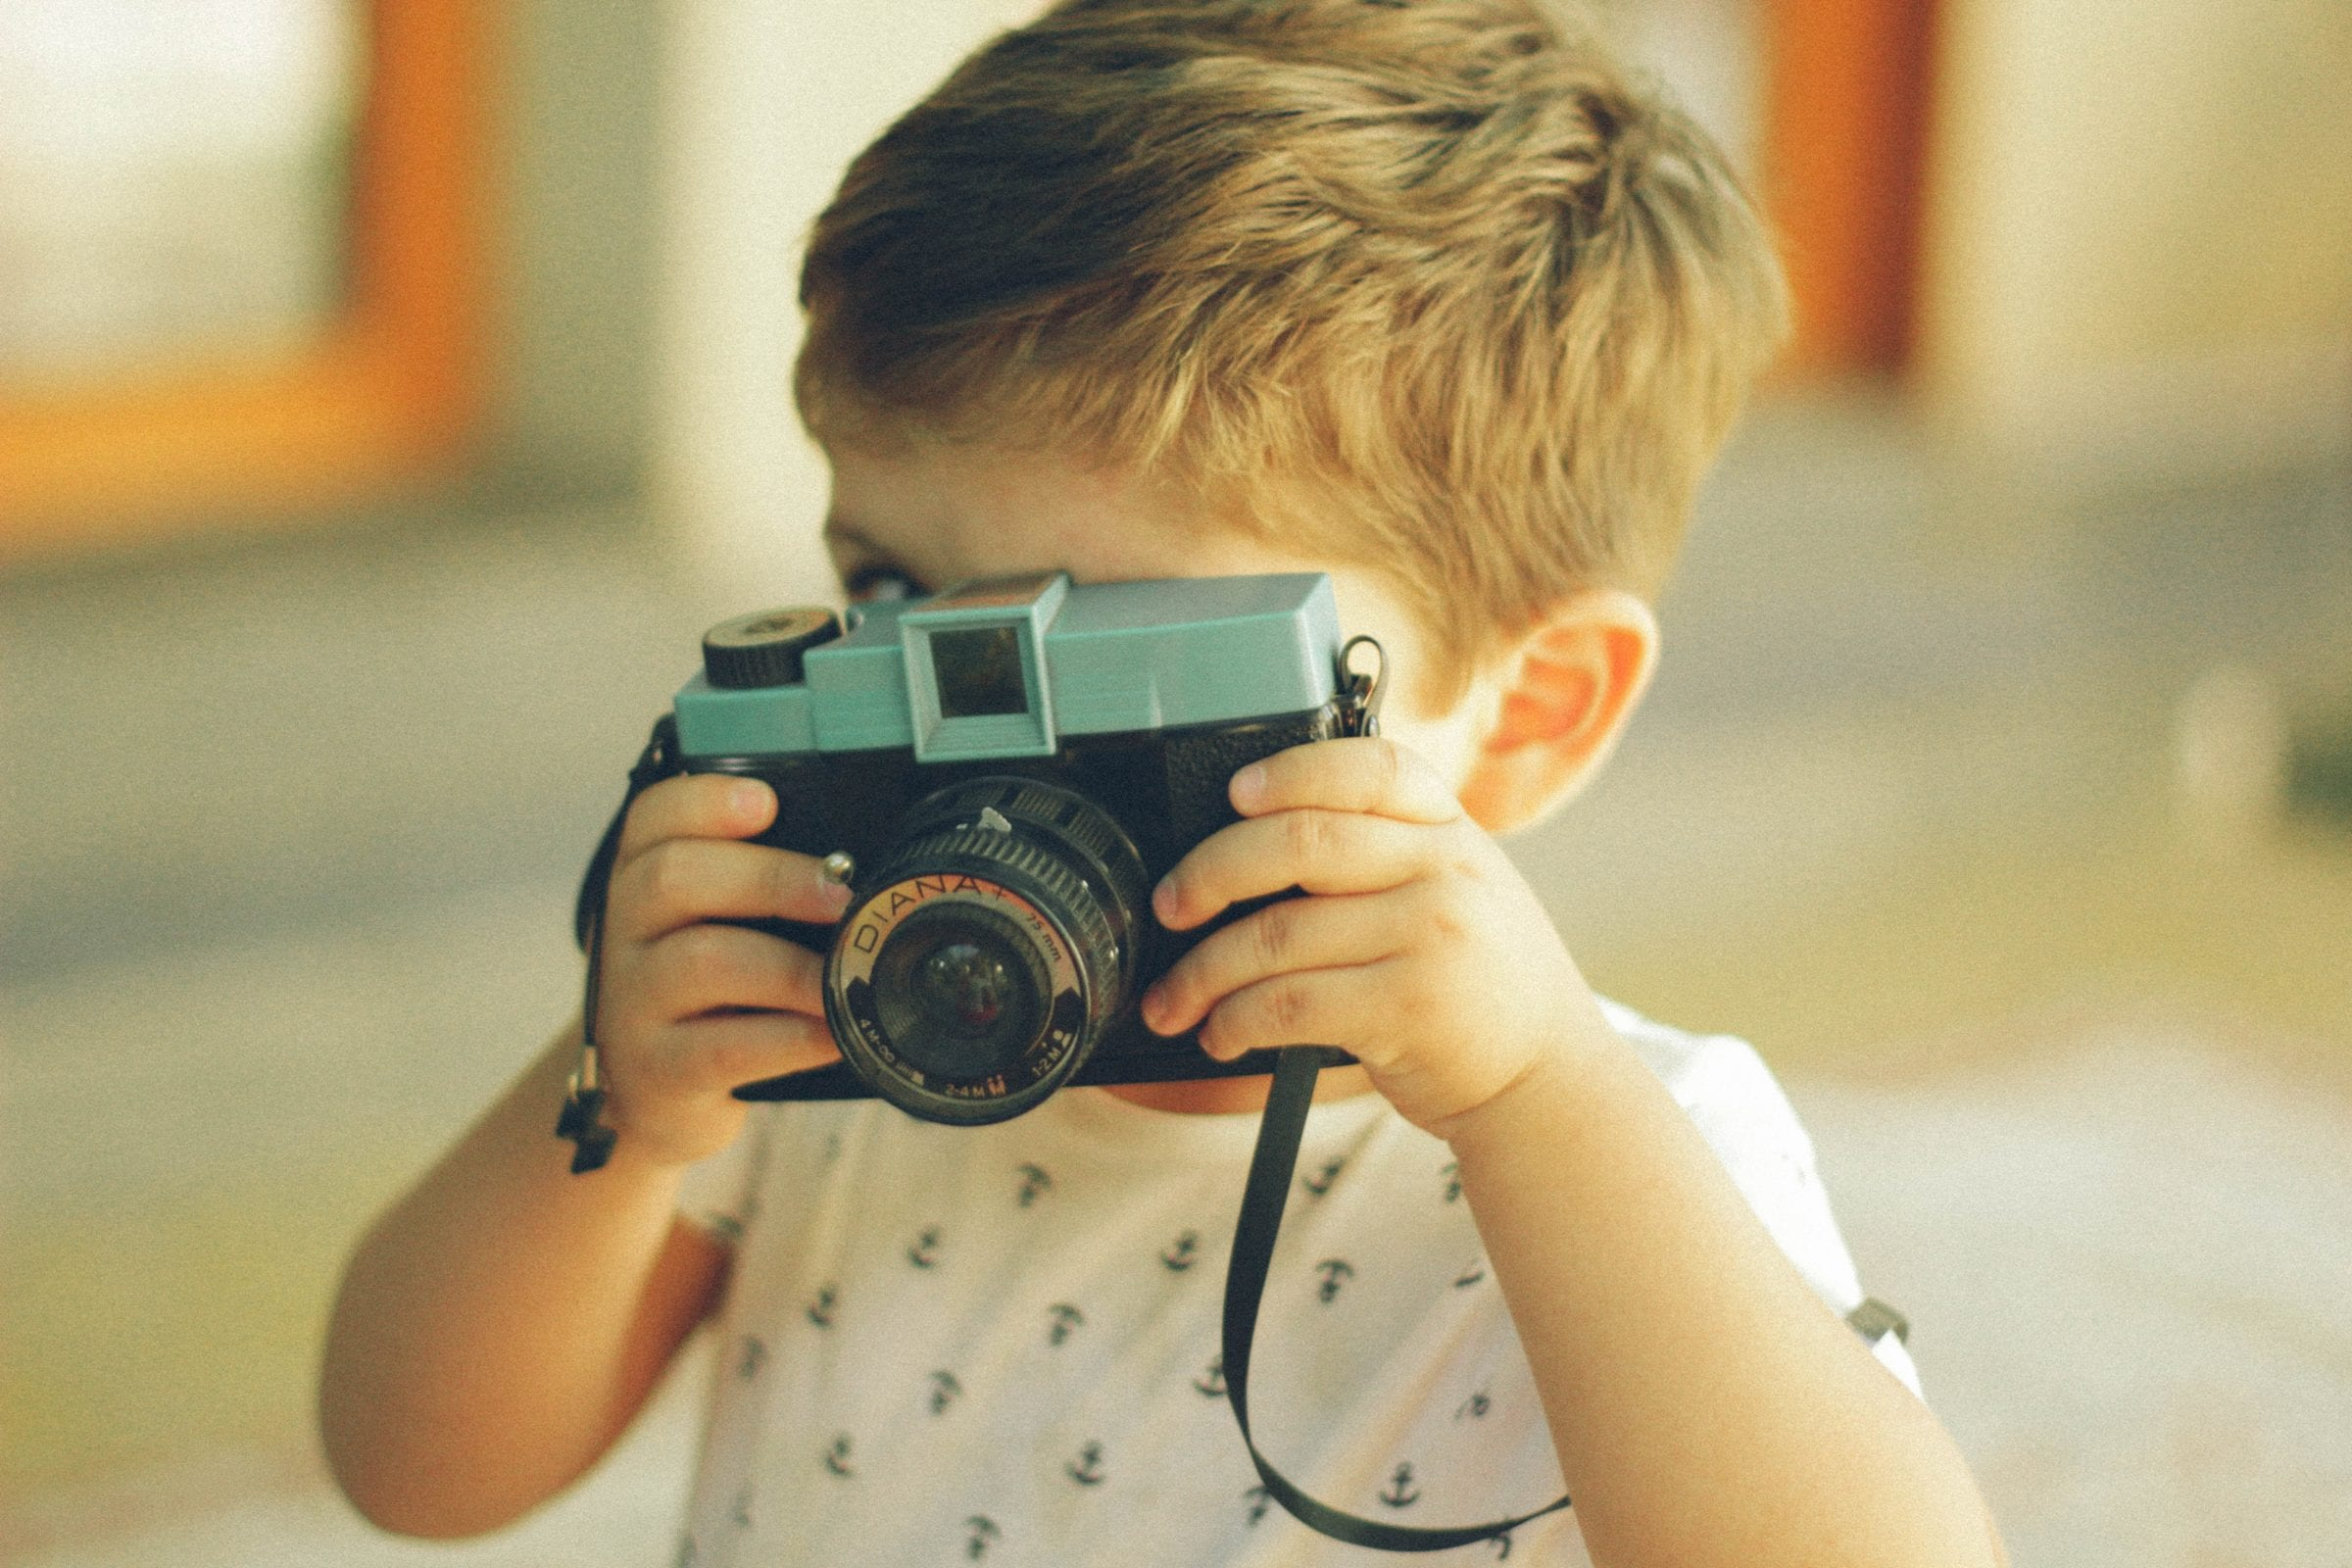 Best Toys for 5 Year Old Boys [20 Great Options]